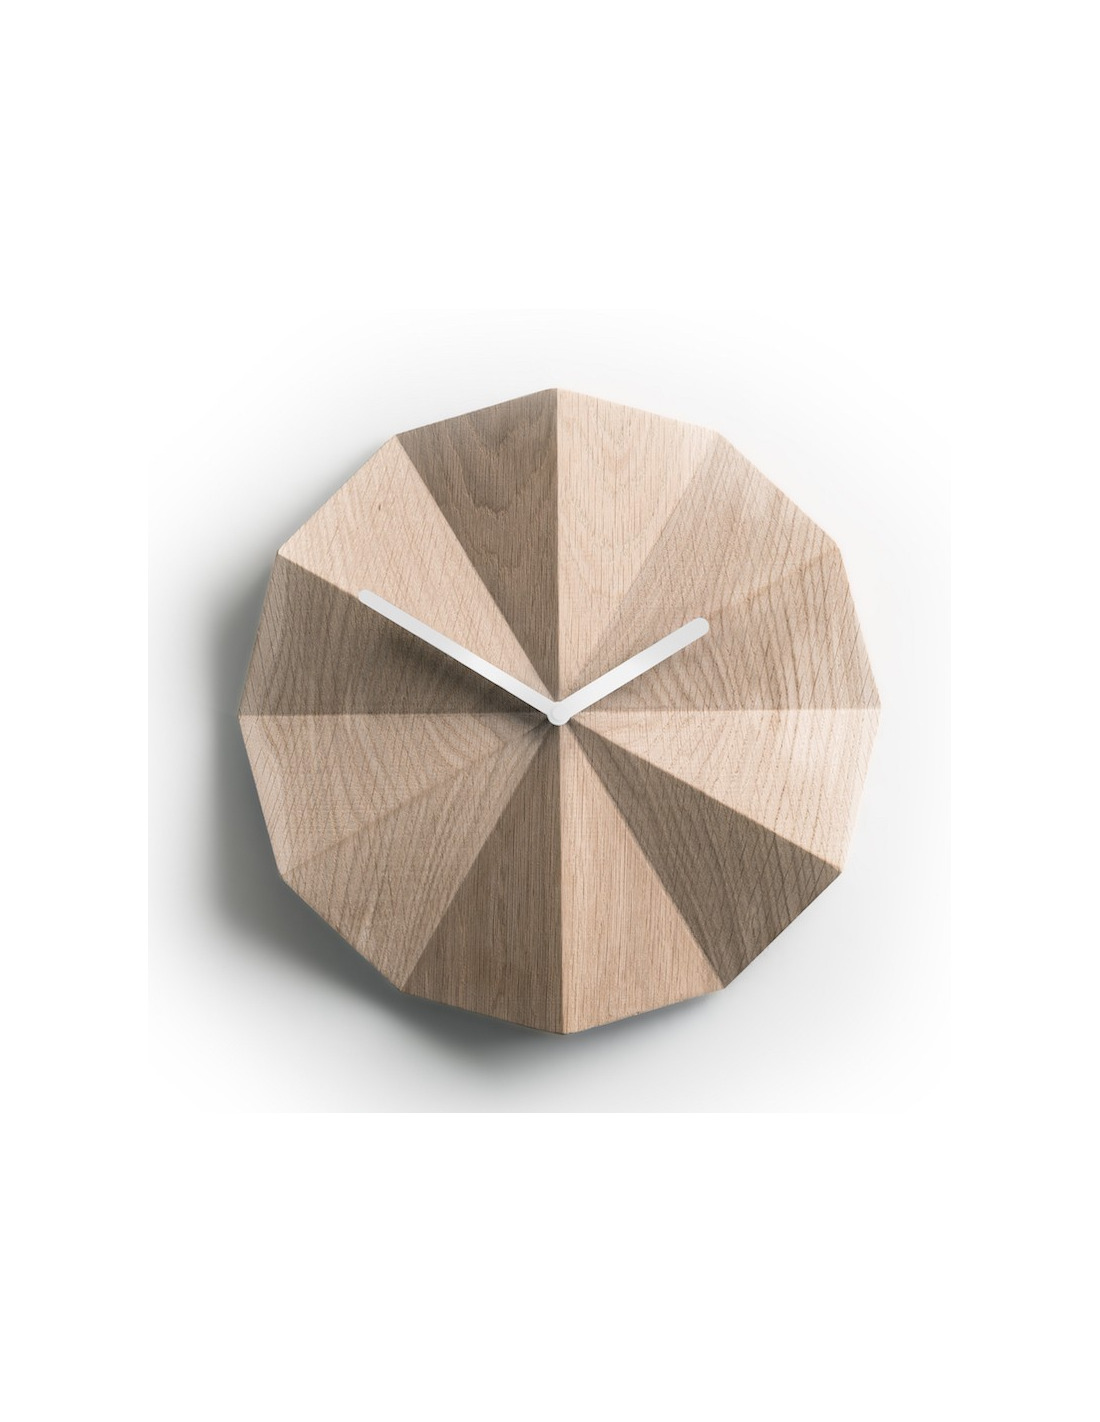 horloge murale minimaliste delta clock en ch ne naturel par lawa design otoko. Black Bedroom Furniture Sets. Home Design Ideas